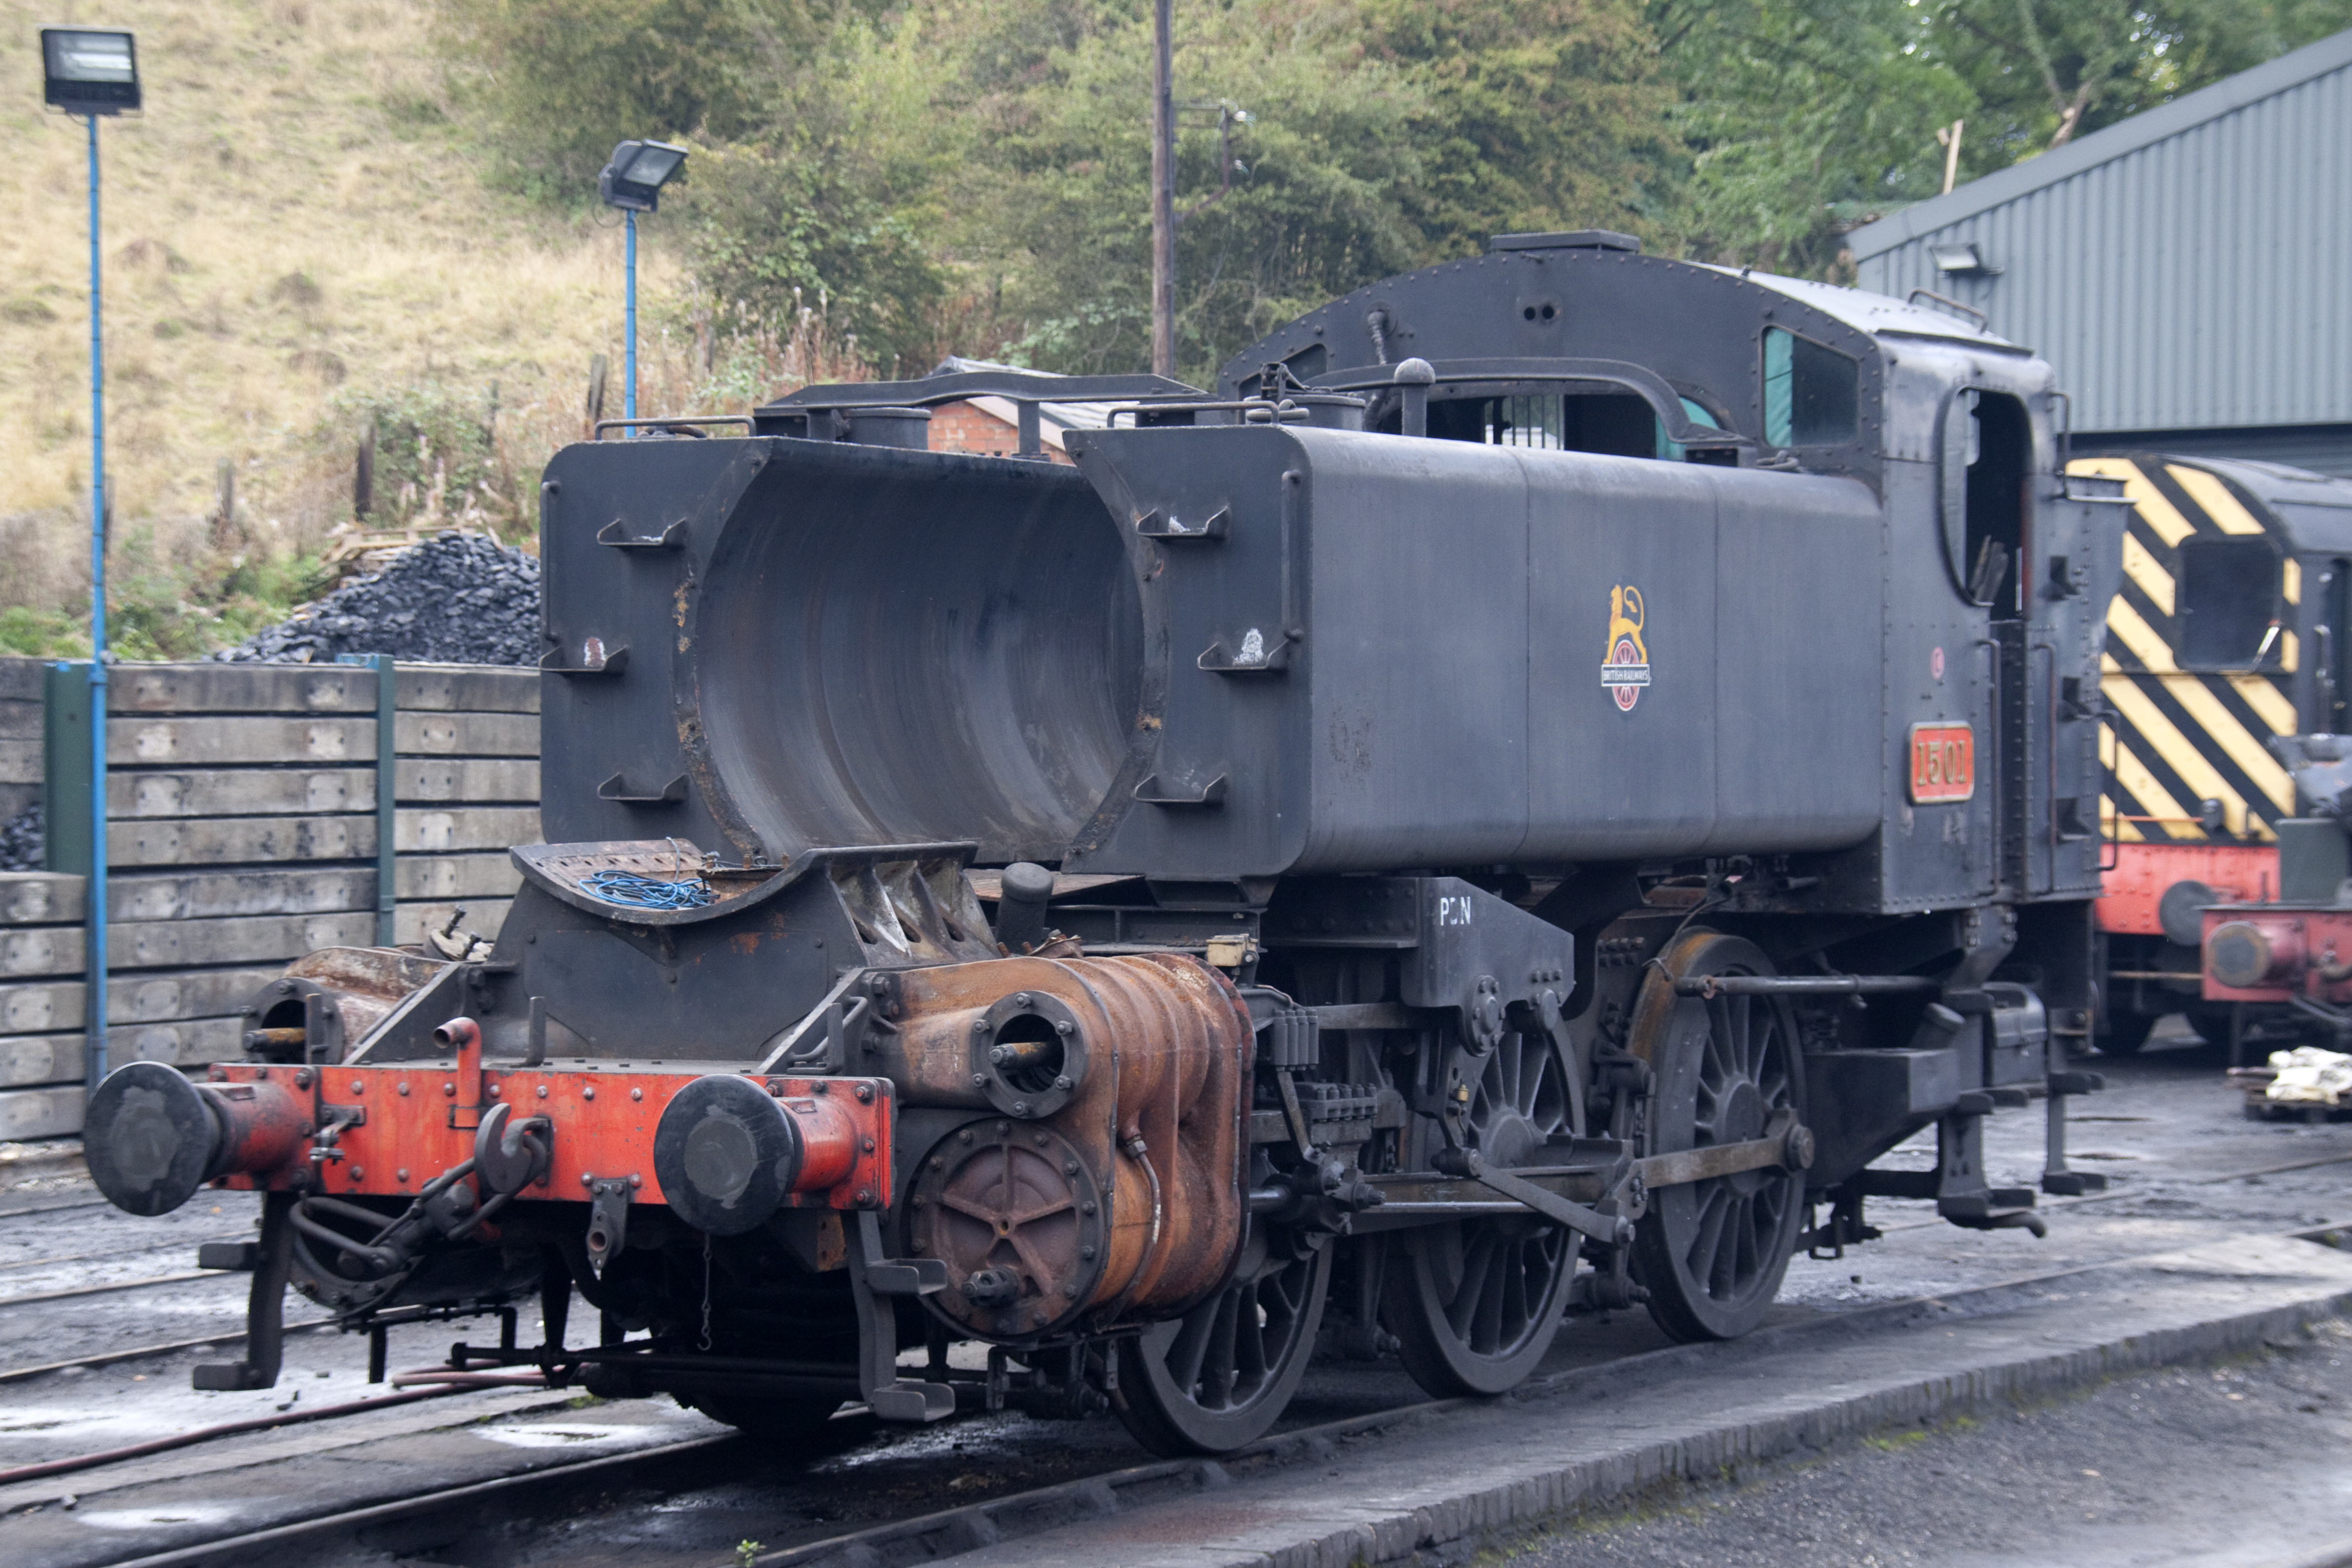 File:Pannier Tank engine 1501 at Bridgenorth.jpg